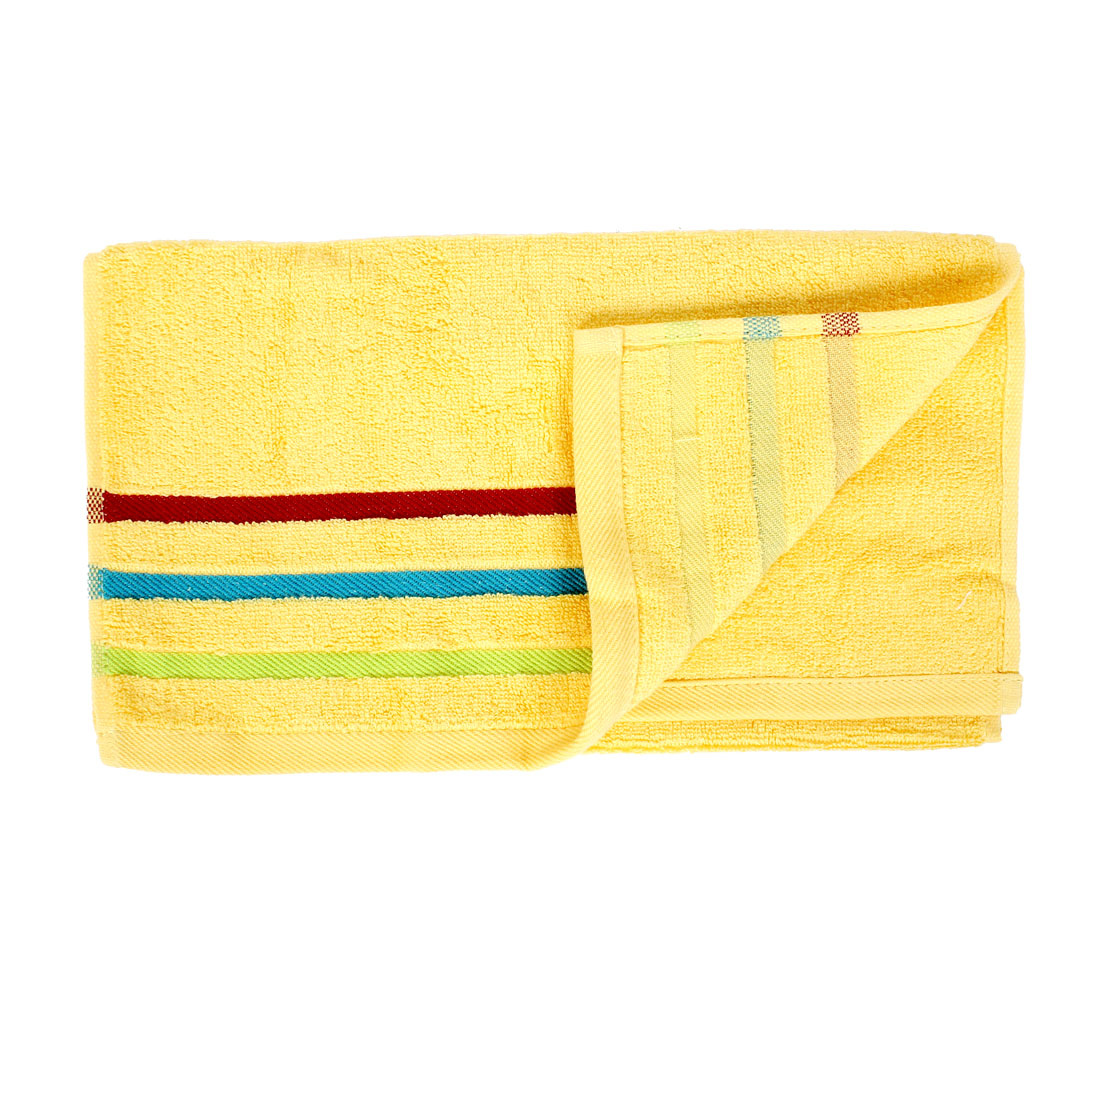 Family Using Cotton Blend Shower Hand Face Wash Terry Towels Washcloths Yellow